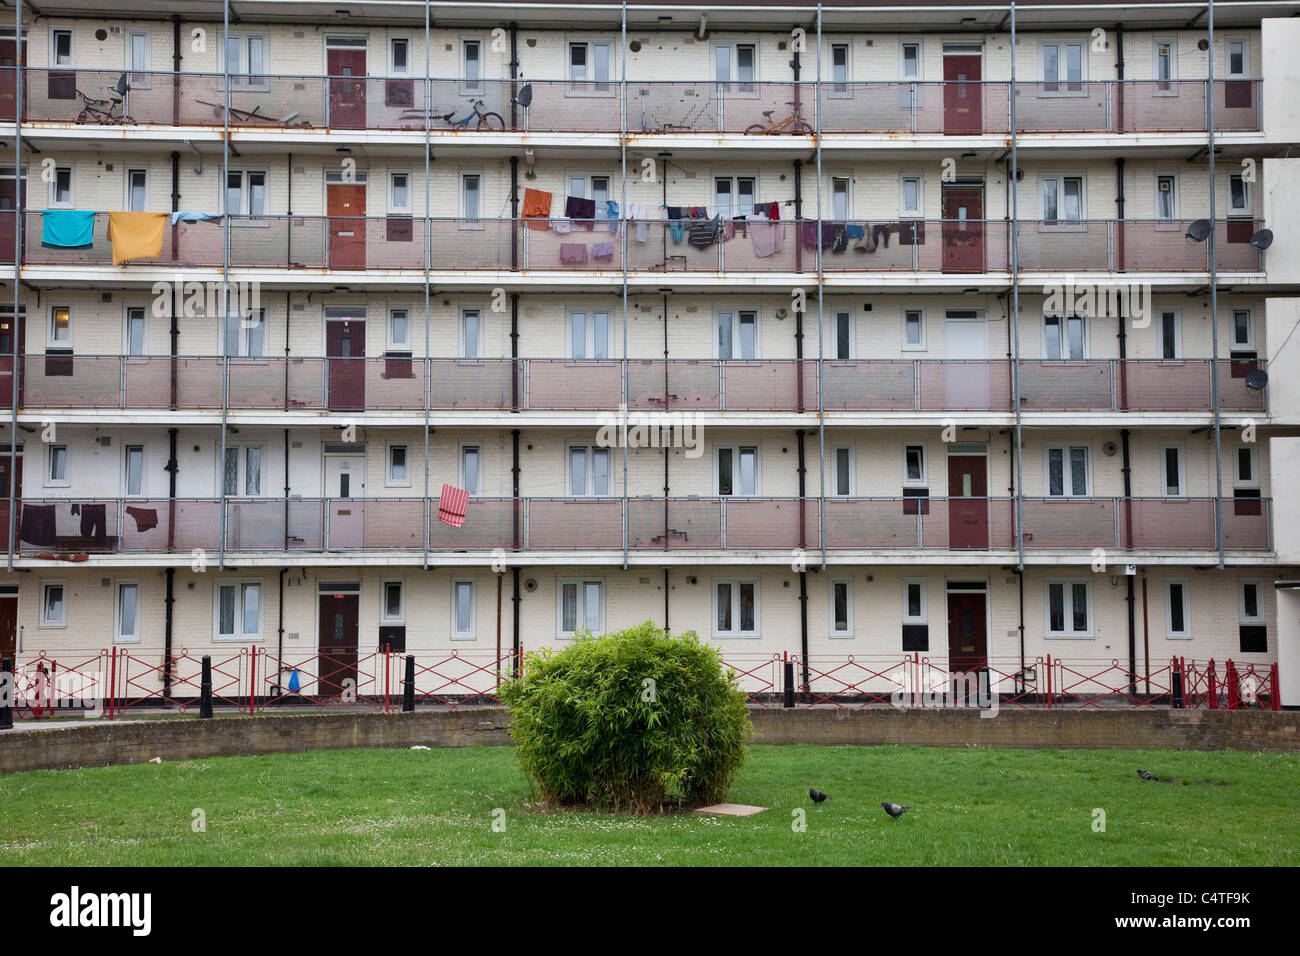 Council flats in Tower Hamlets, East London. A poor, over populated area with many living in small homes in high - Stock Image